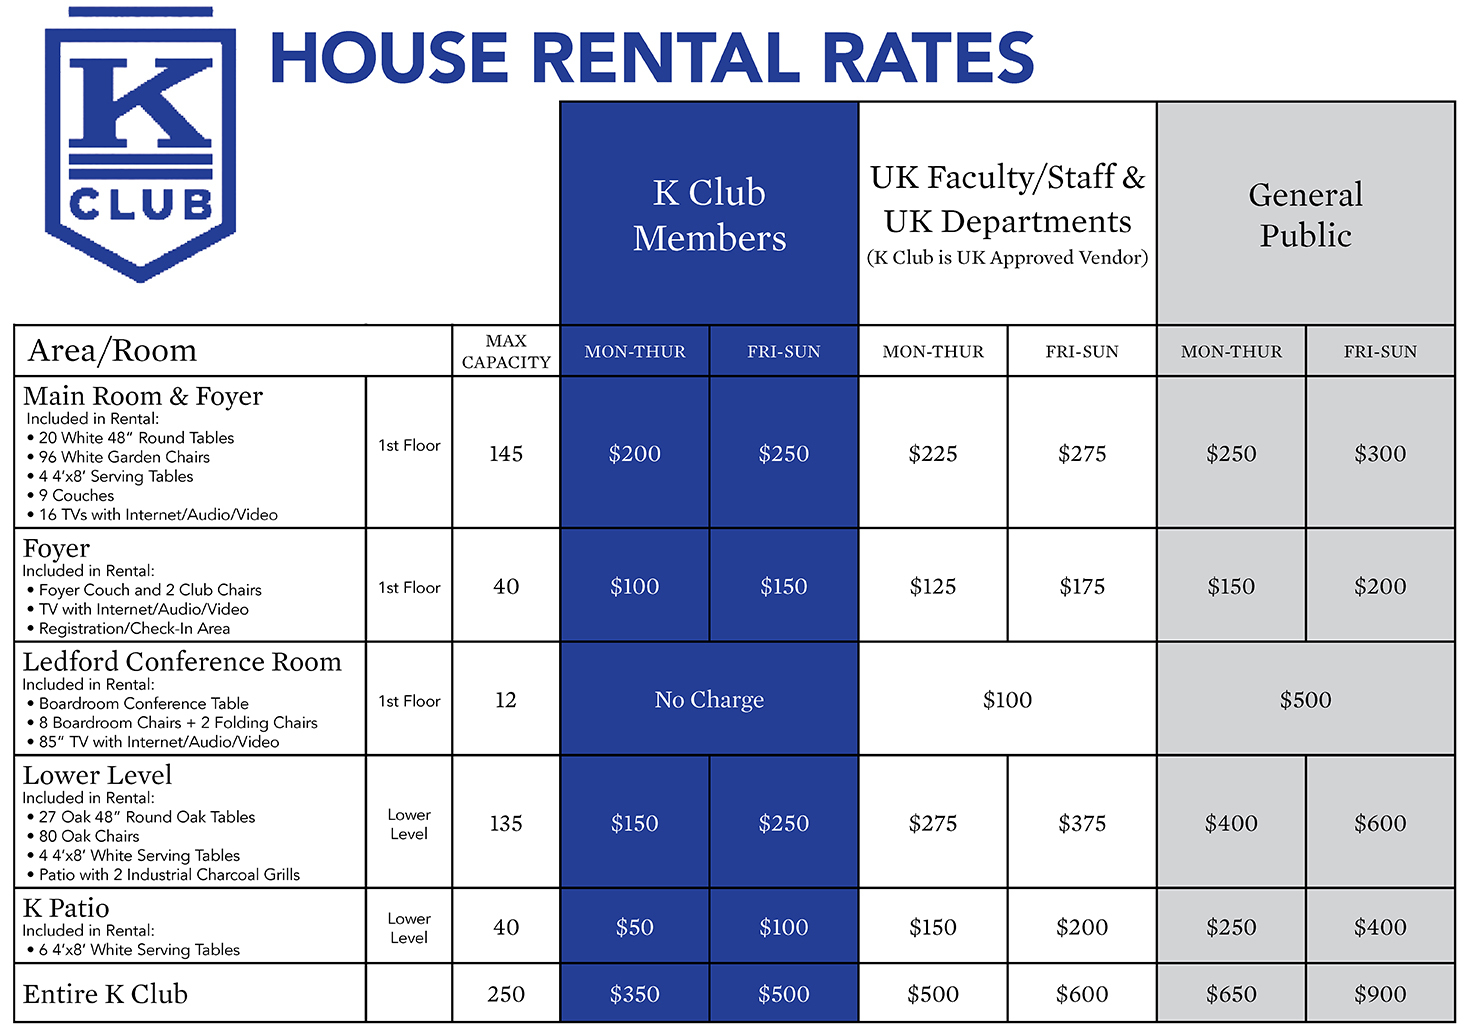 K Club Rental Rates 2019